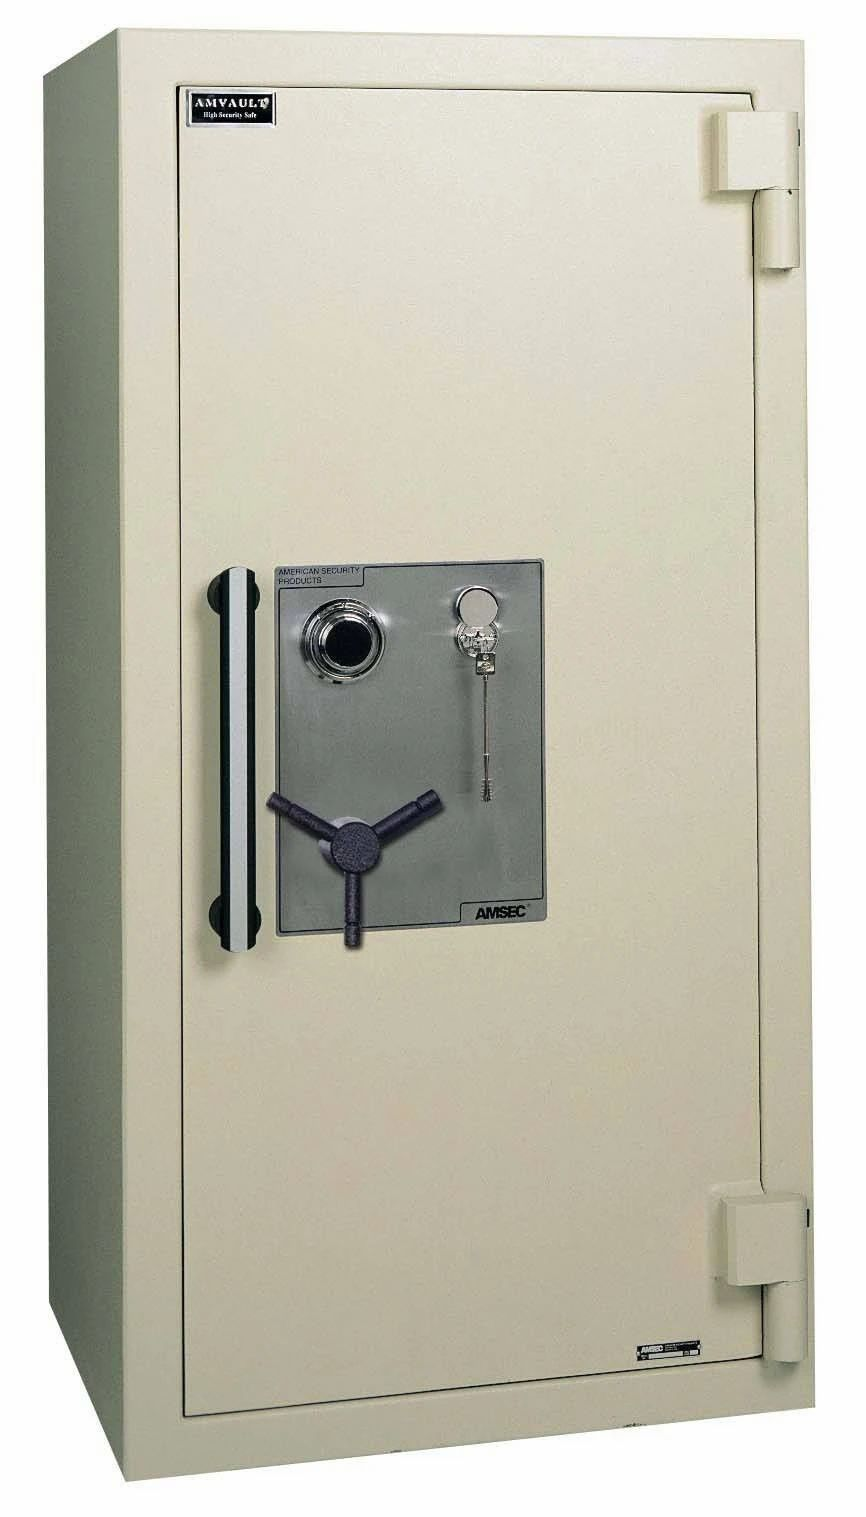 Open Combination Locks Without a Code Combination locks